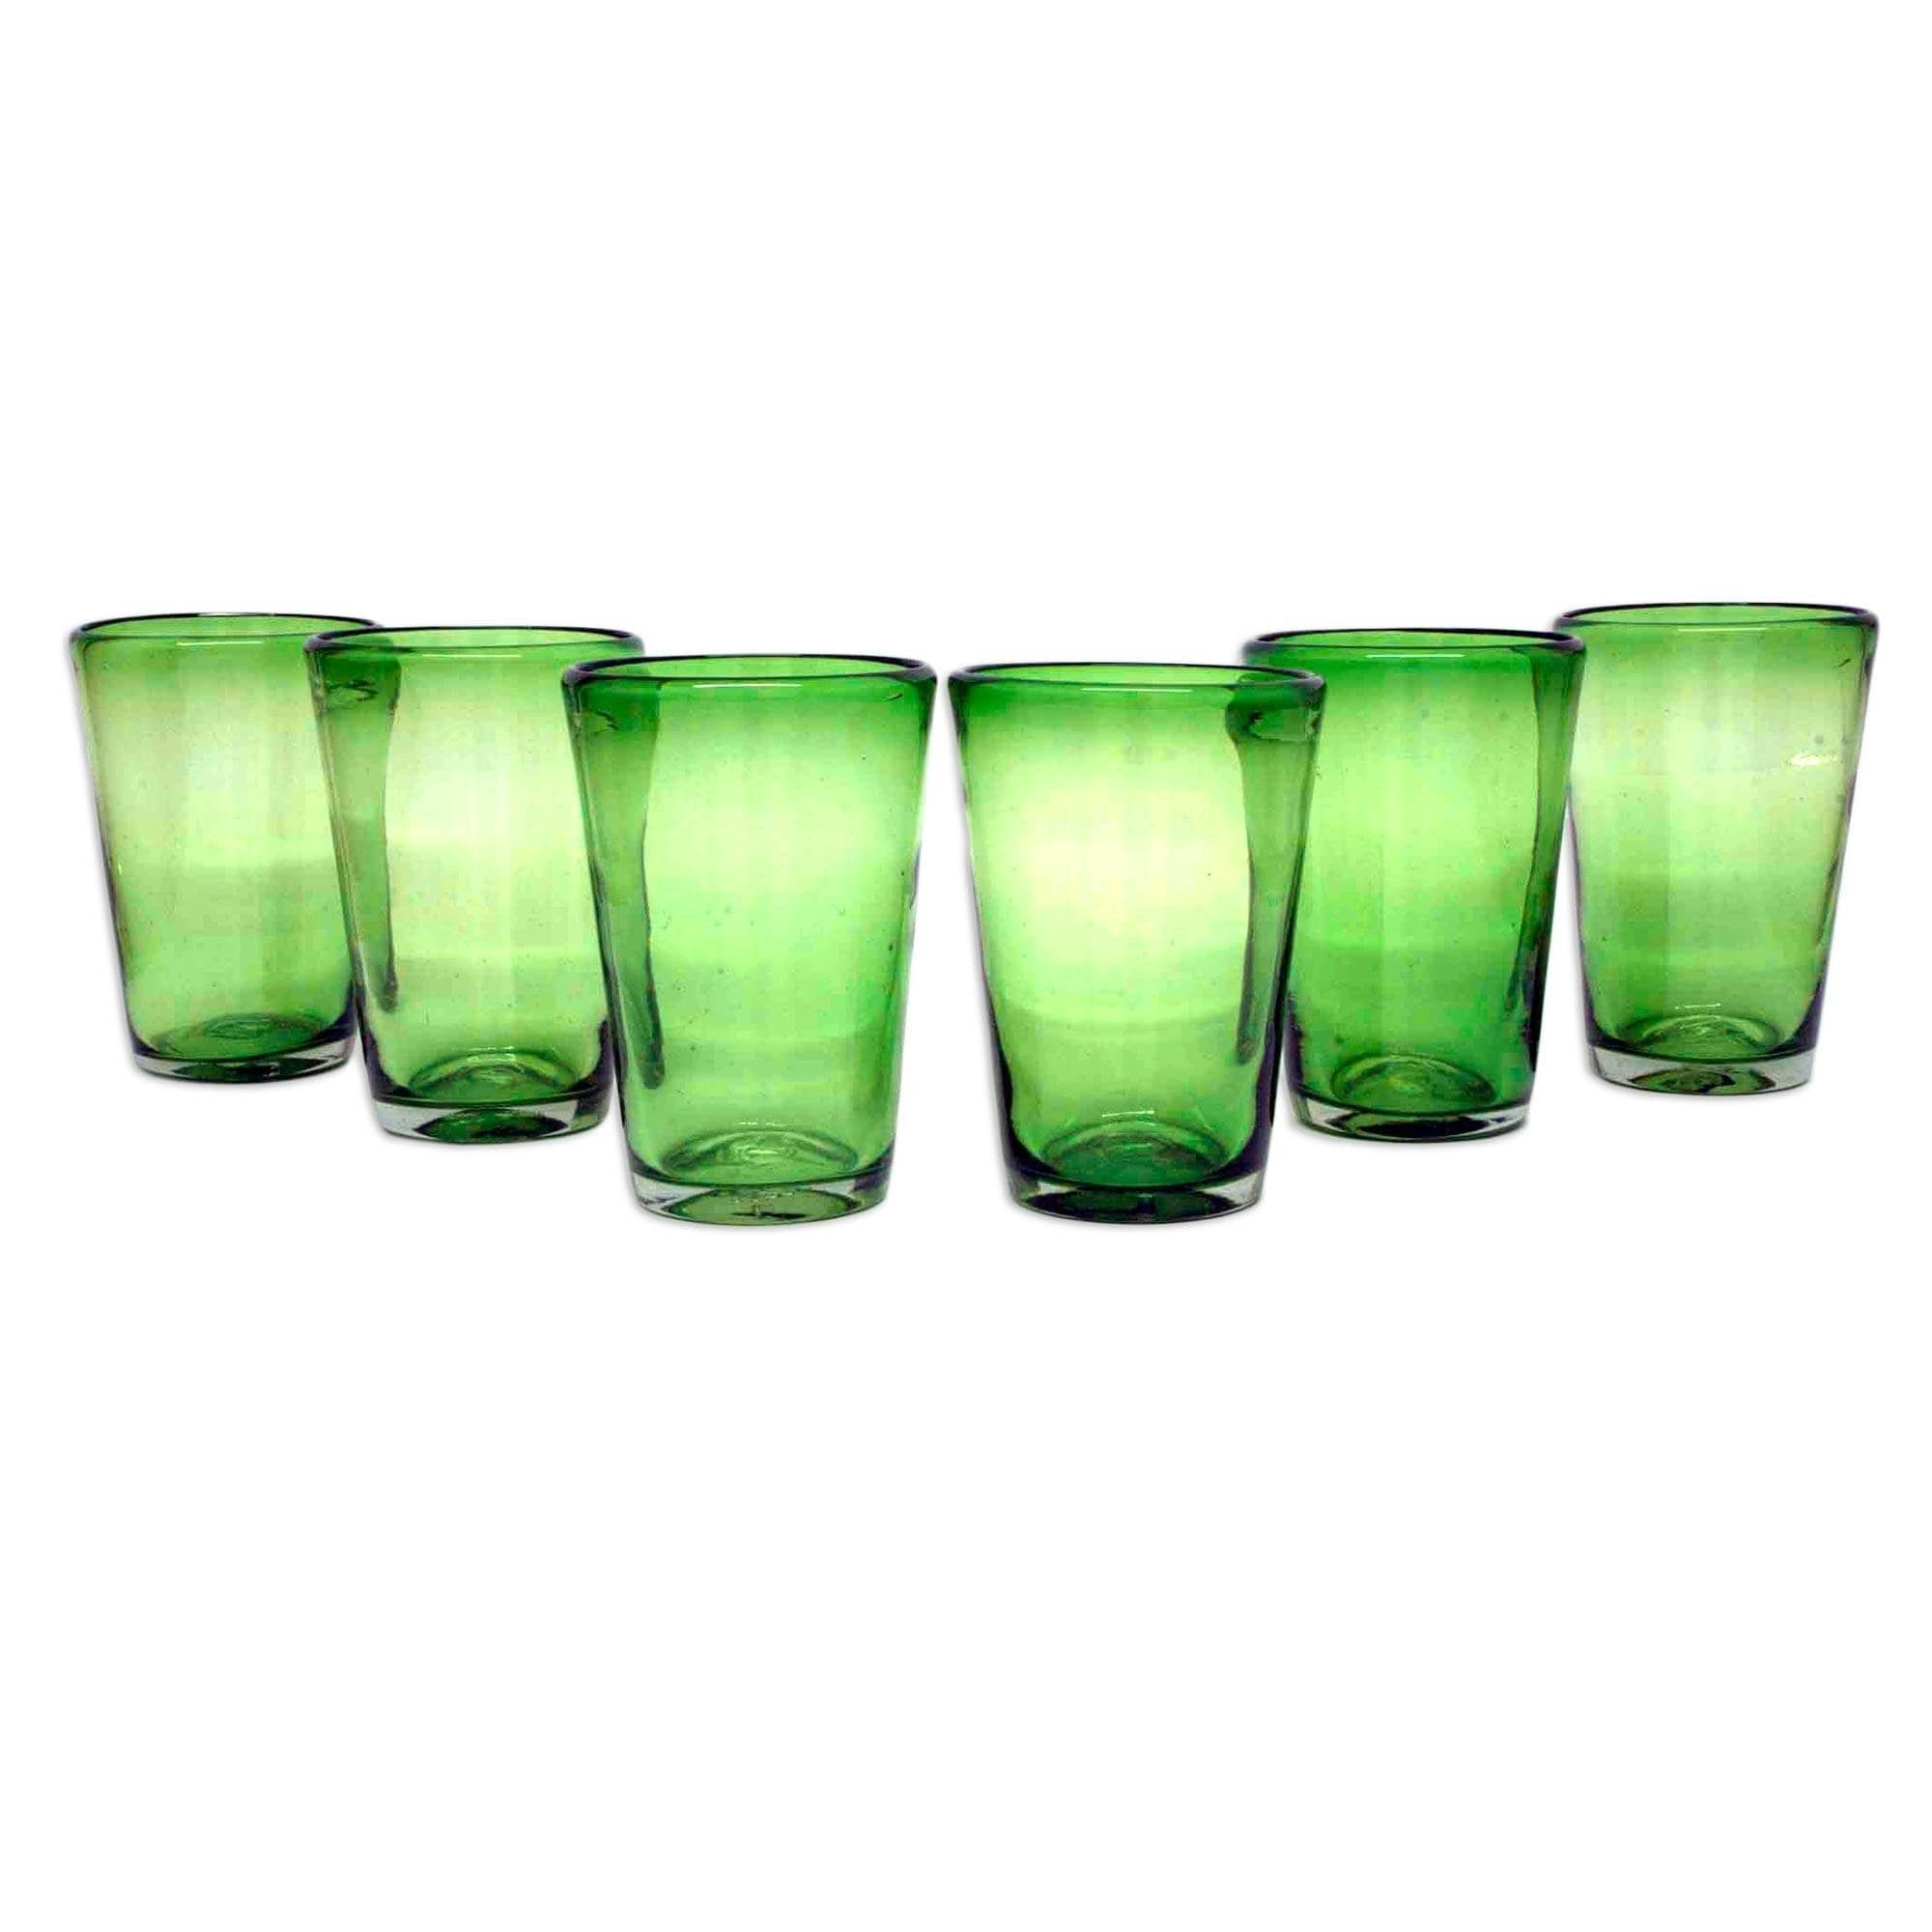 fdc3d88e6a9 Shop Handmade Glass Emerald Angles Drinking Glasses Set of 6 (Mexico) -  Free Shipping Today - Overstock - 6369729